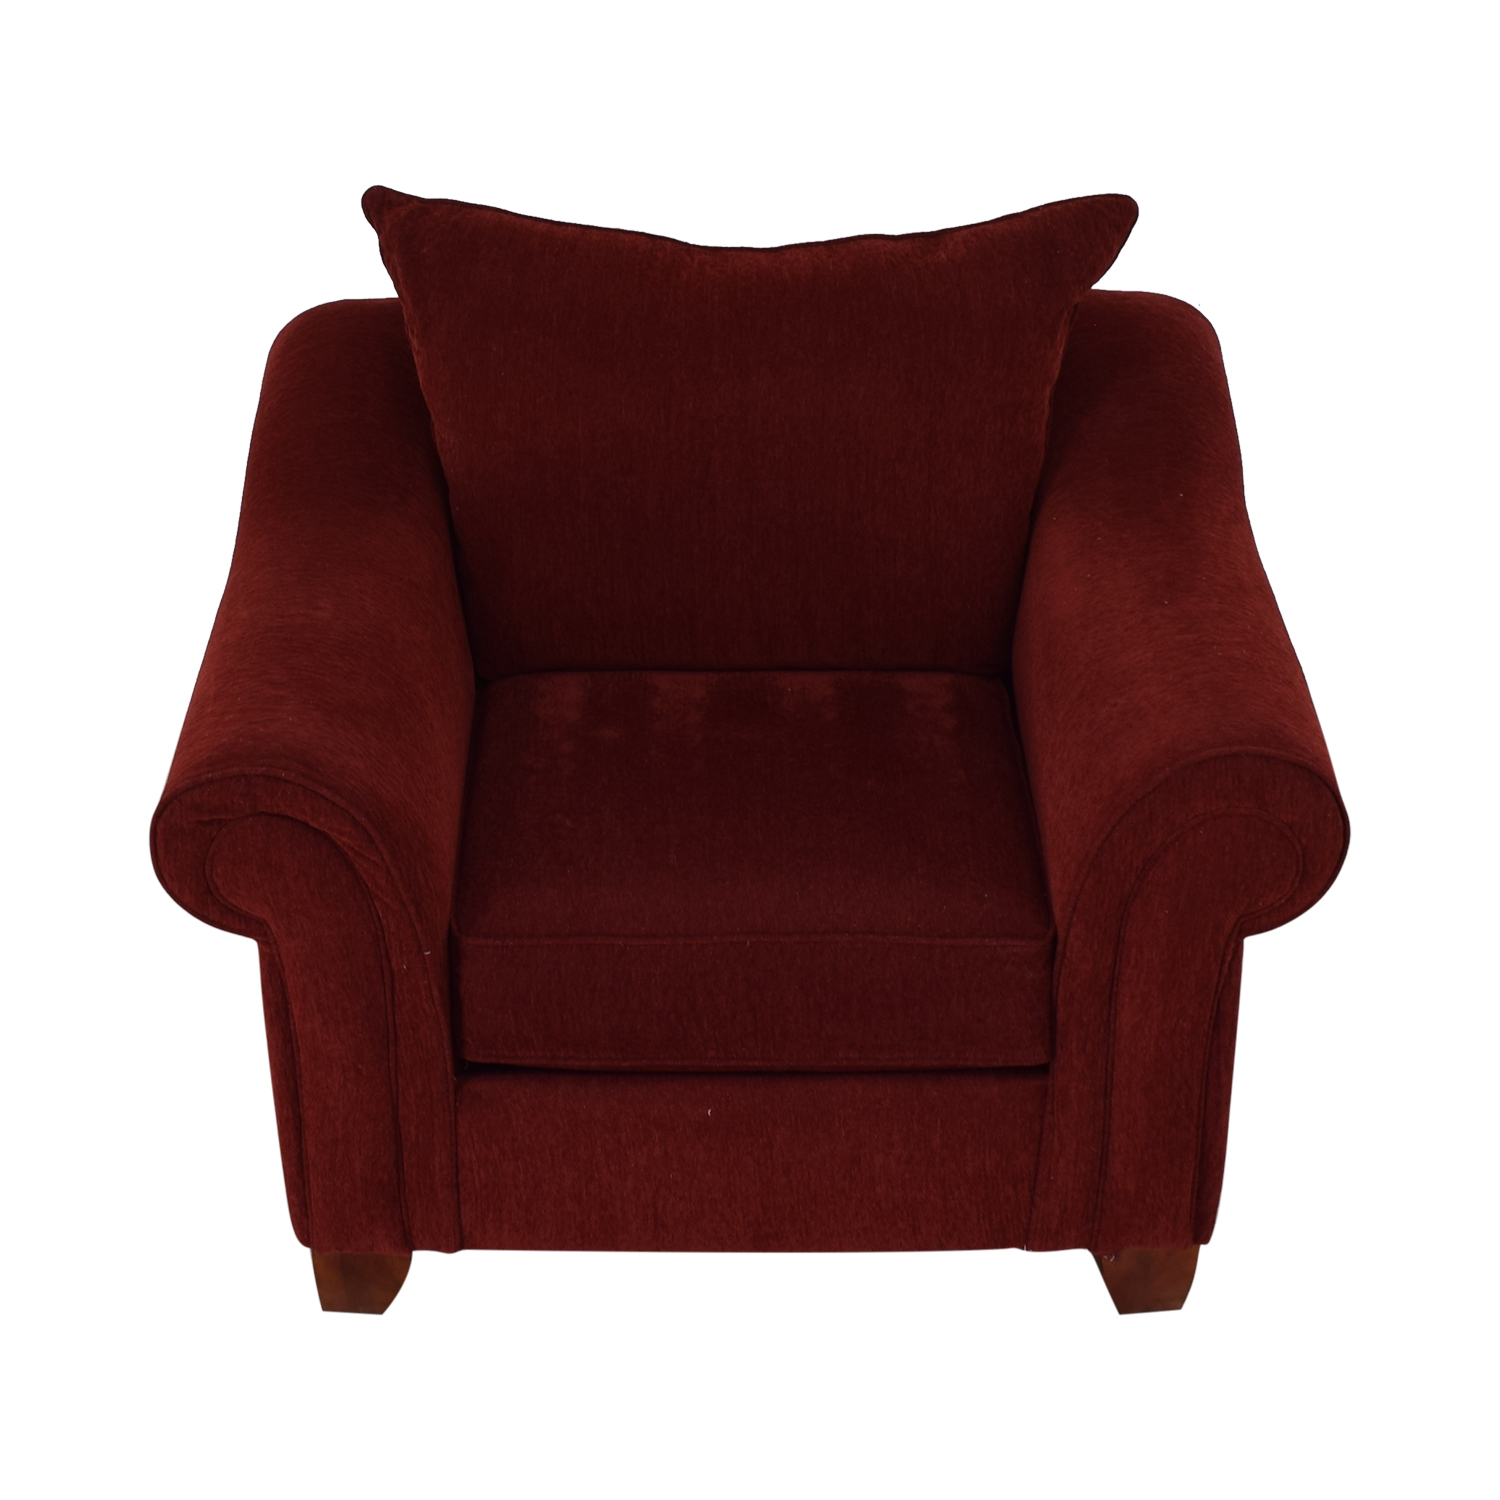 buy Raymour & Flanigan Red Arm Accent Chair Raymour & Flanigan